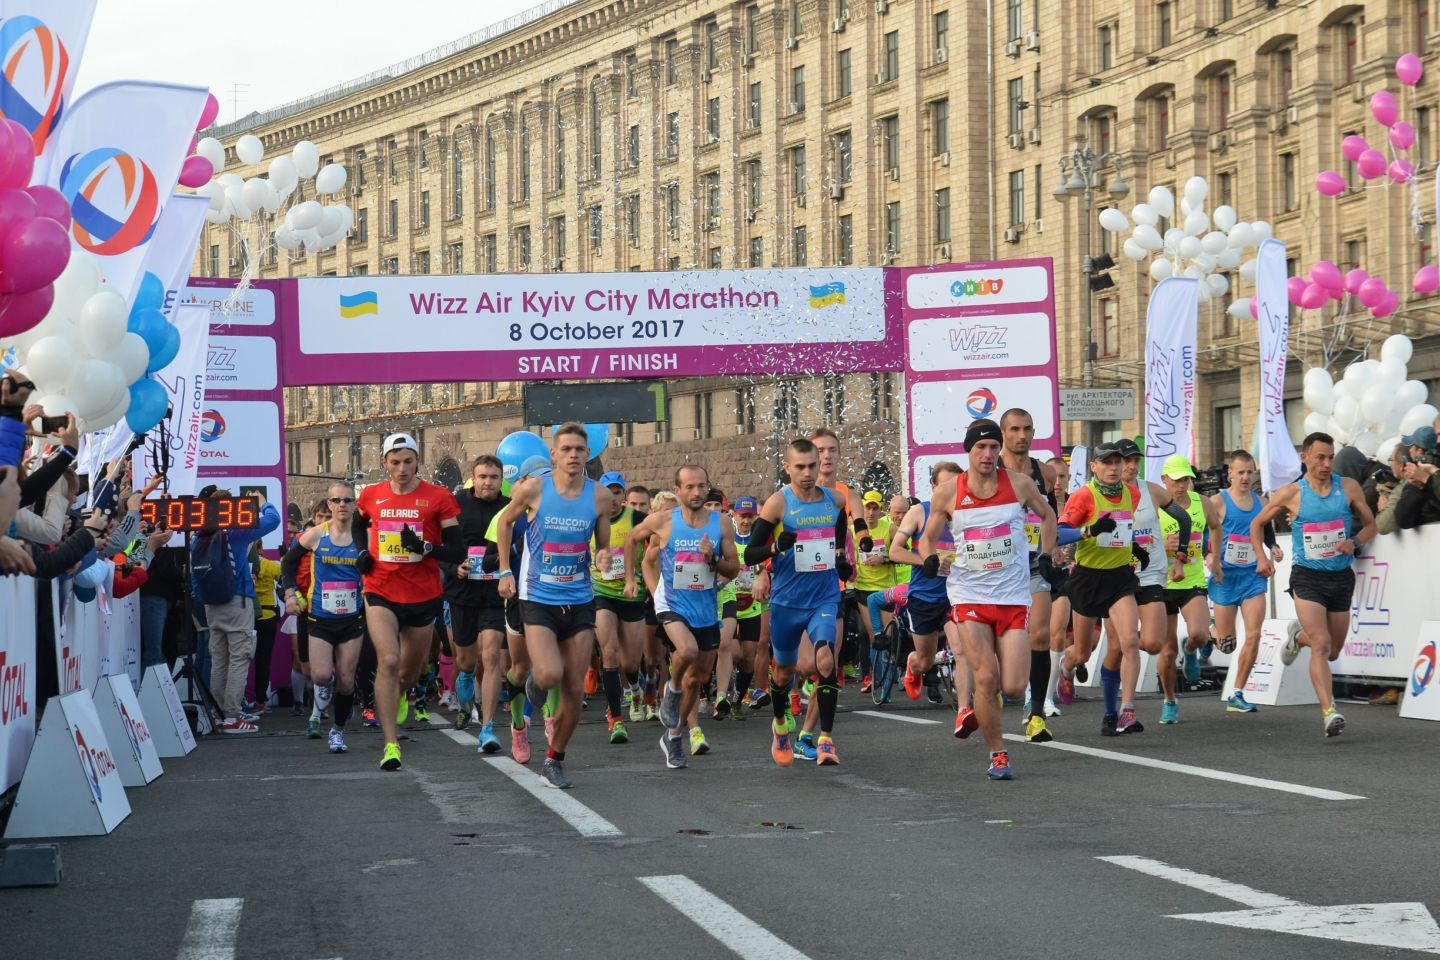 Wizz Air Kyiv City Marathon